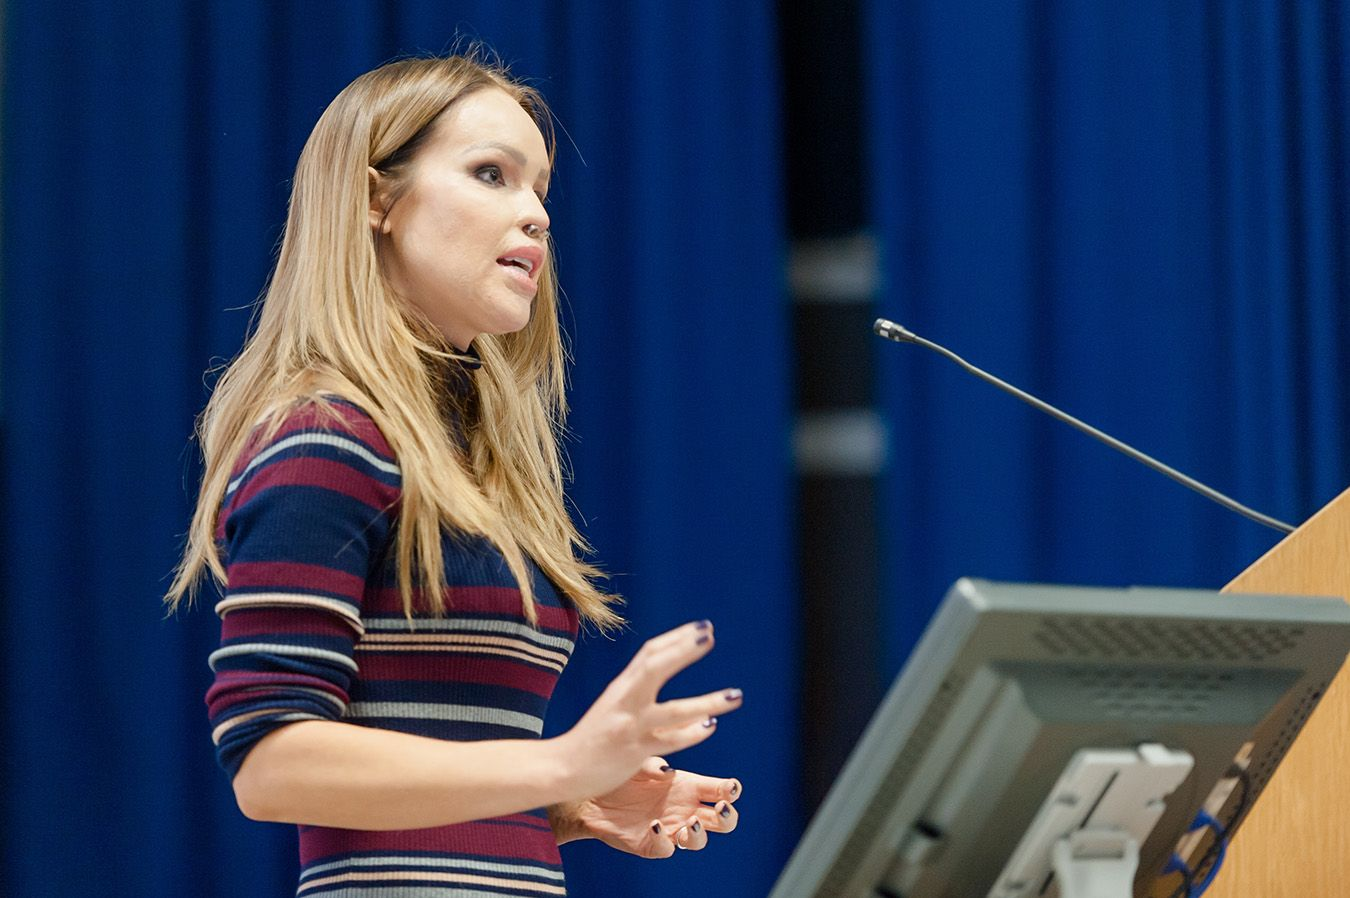 Acid attack survivor Katie Piper told an audience of more than 200 students at Kingston University  how she had learned to hold onto hope